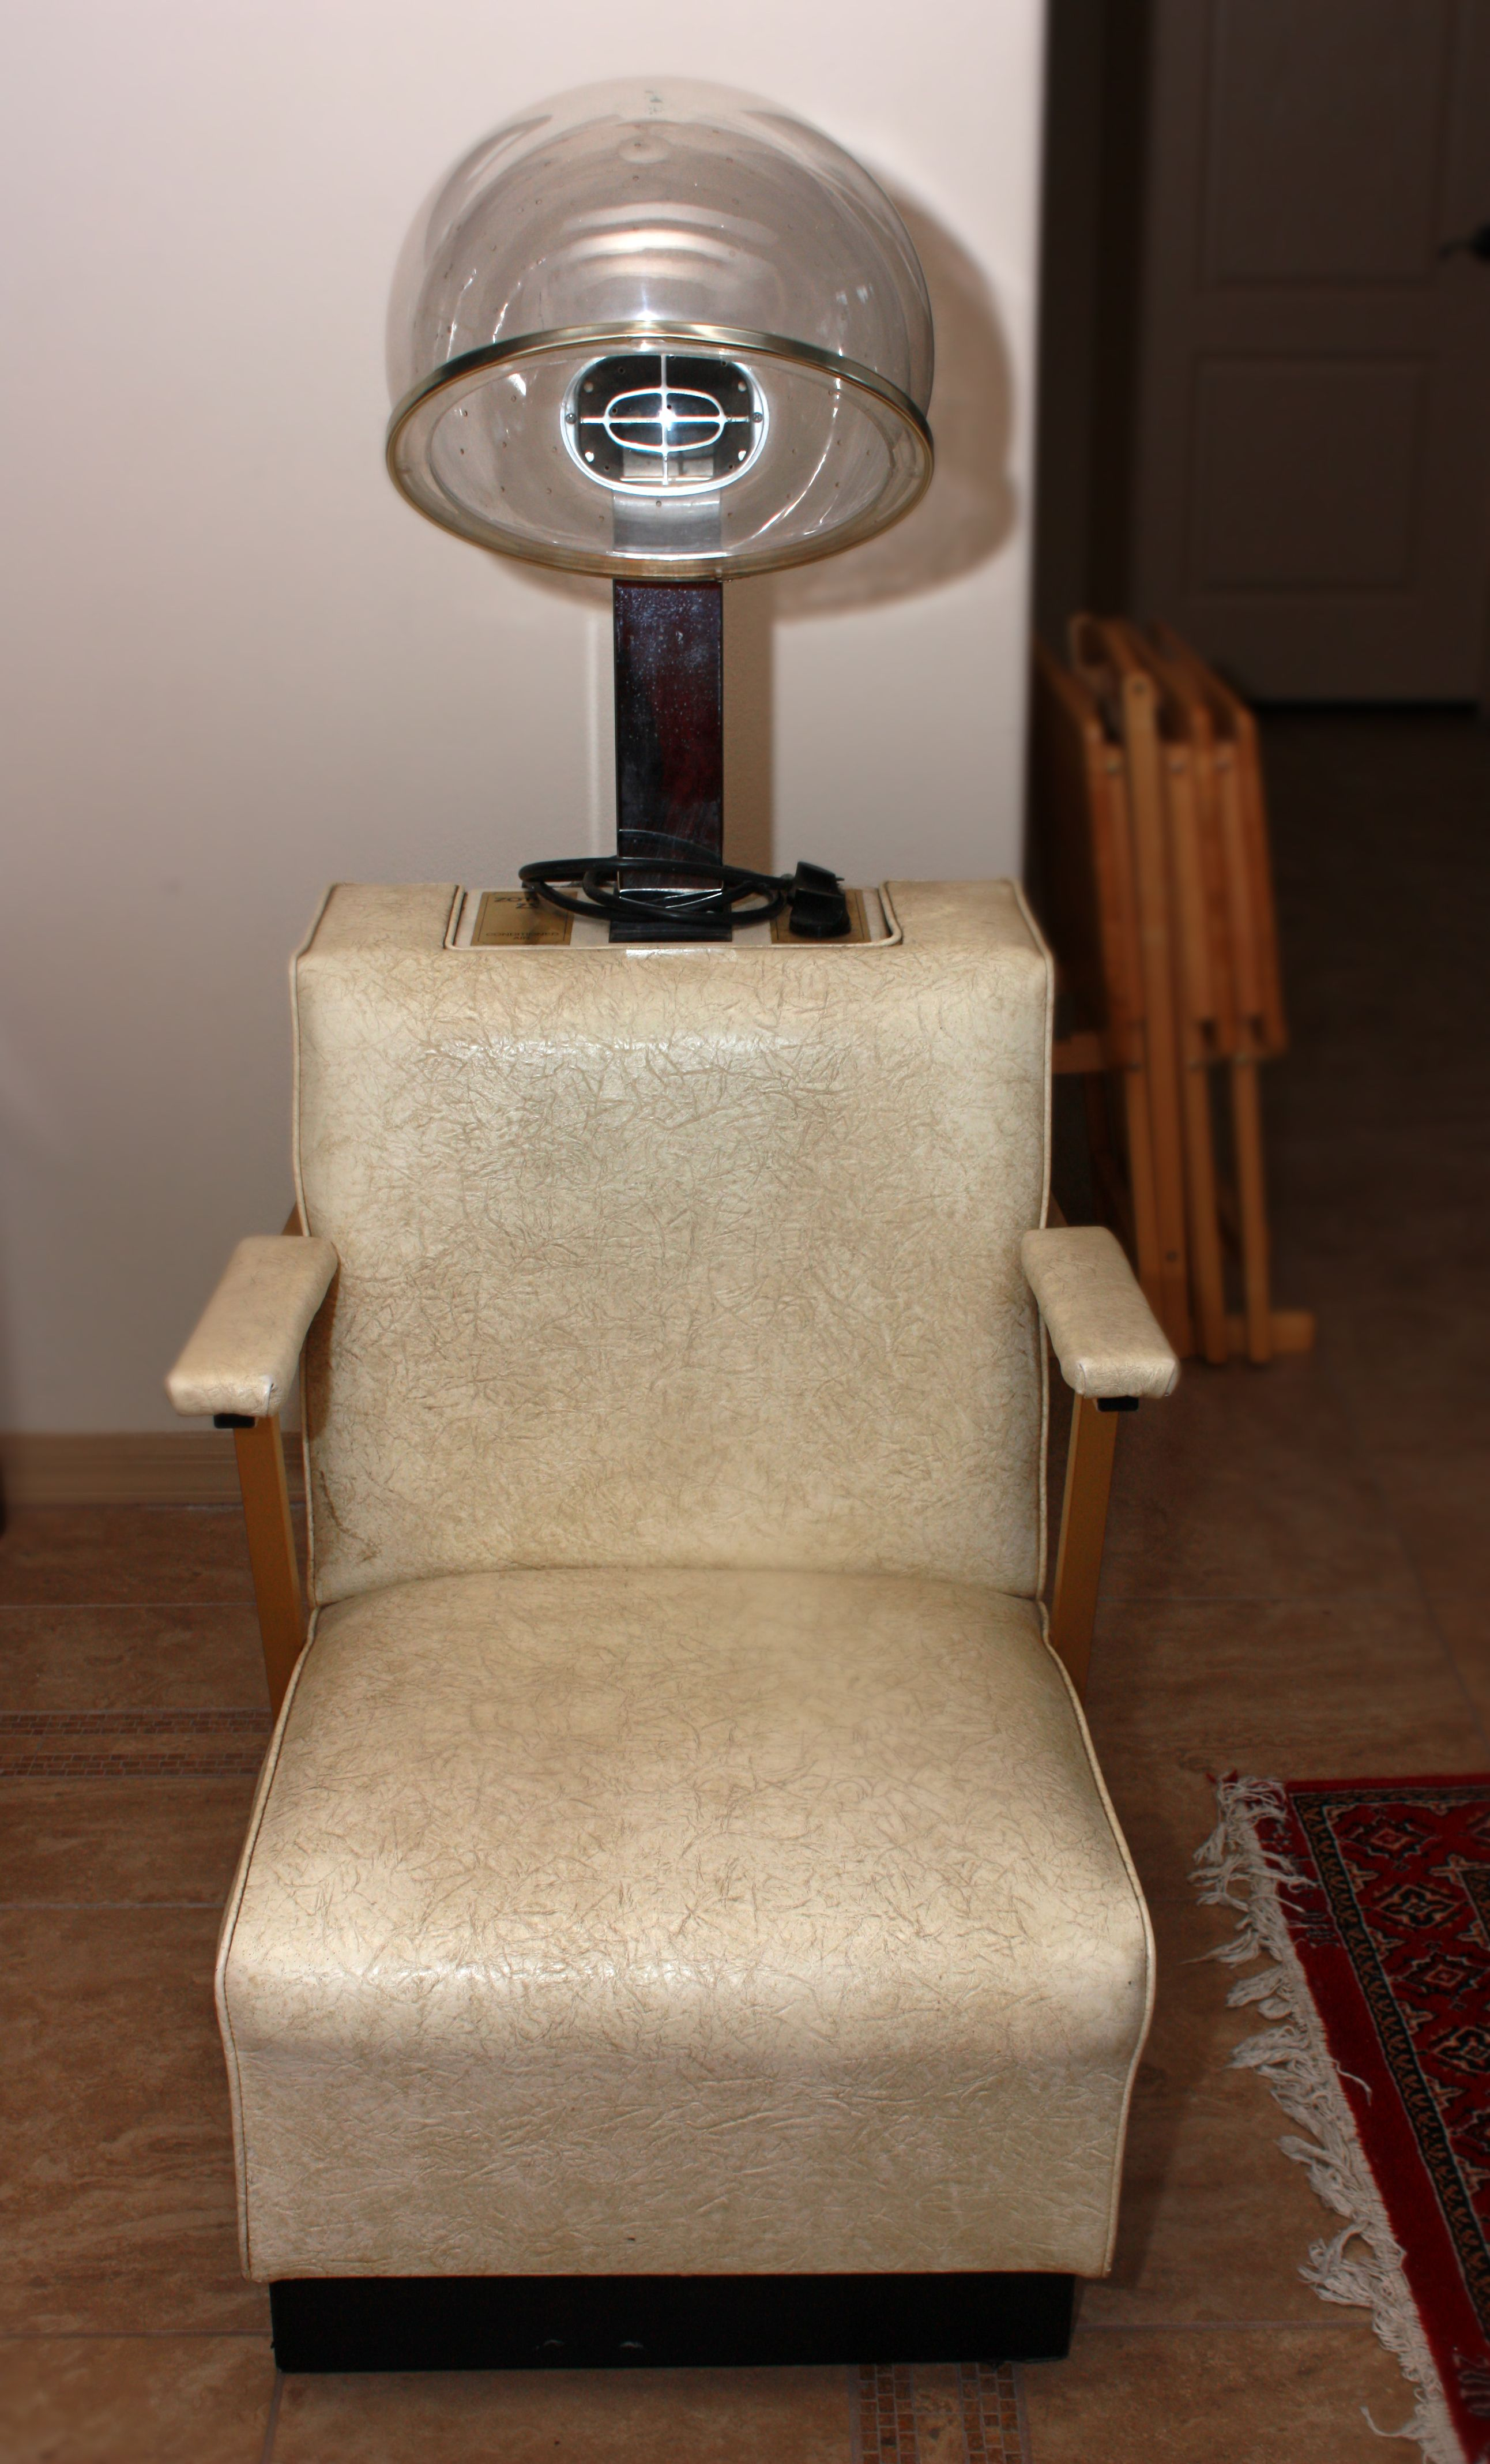 Retro Salon Chair- given to me by a friend.